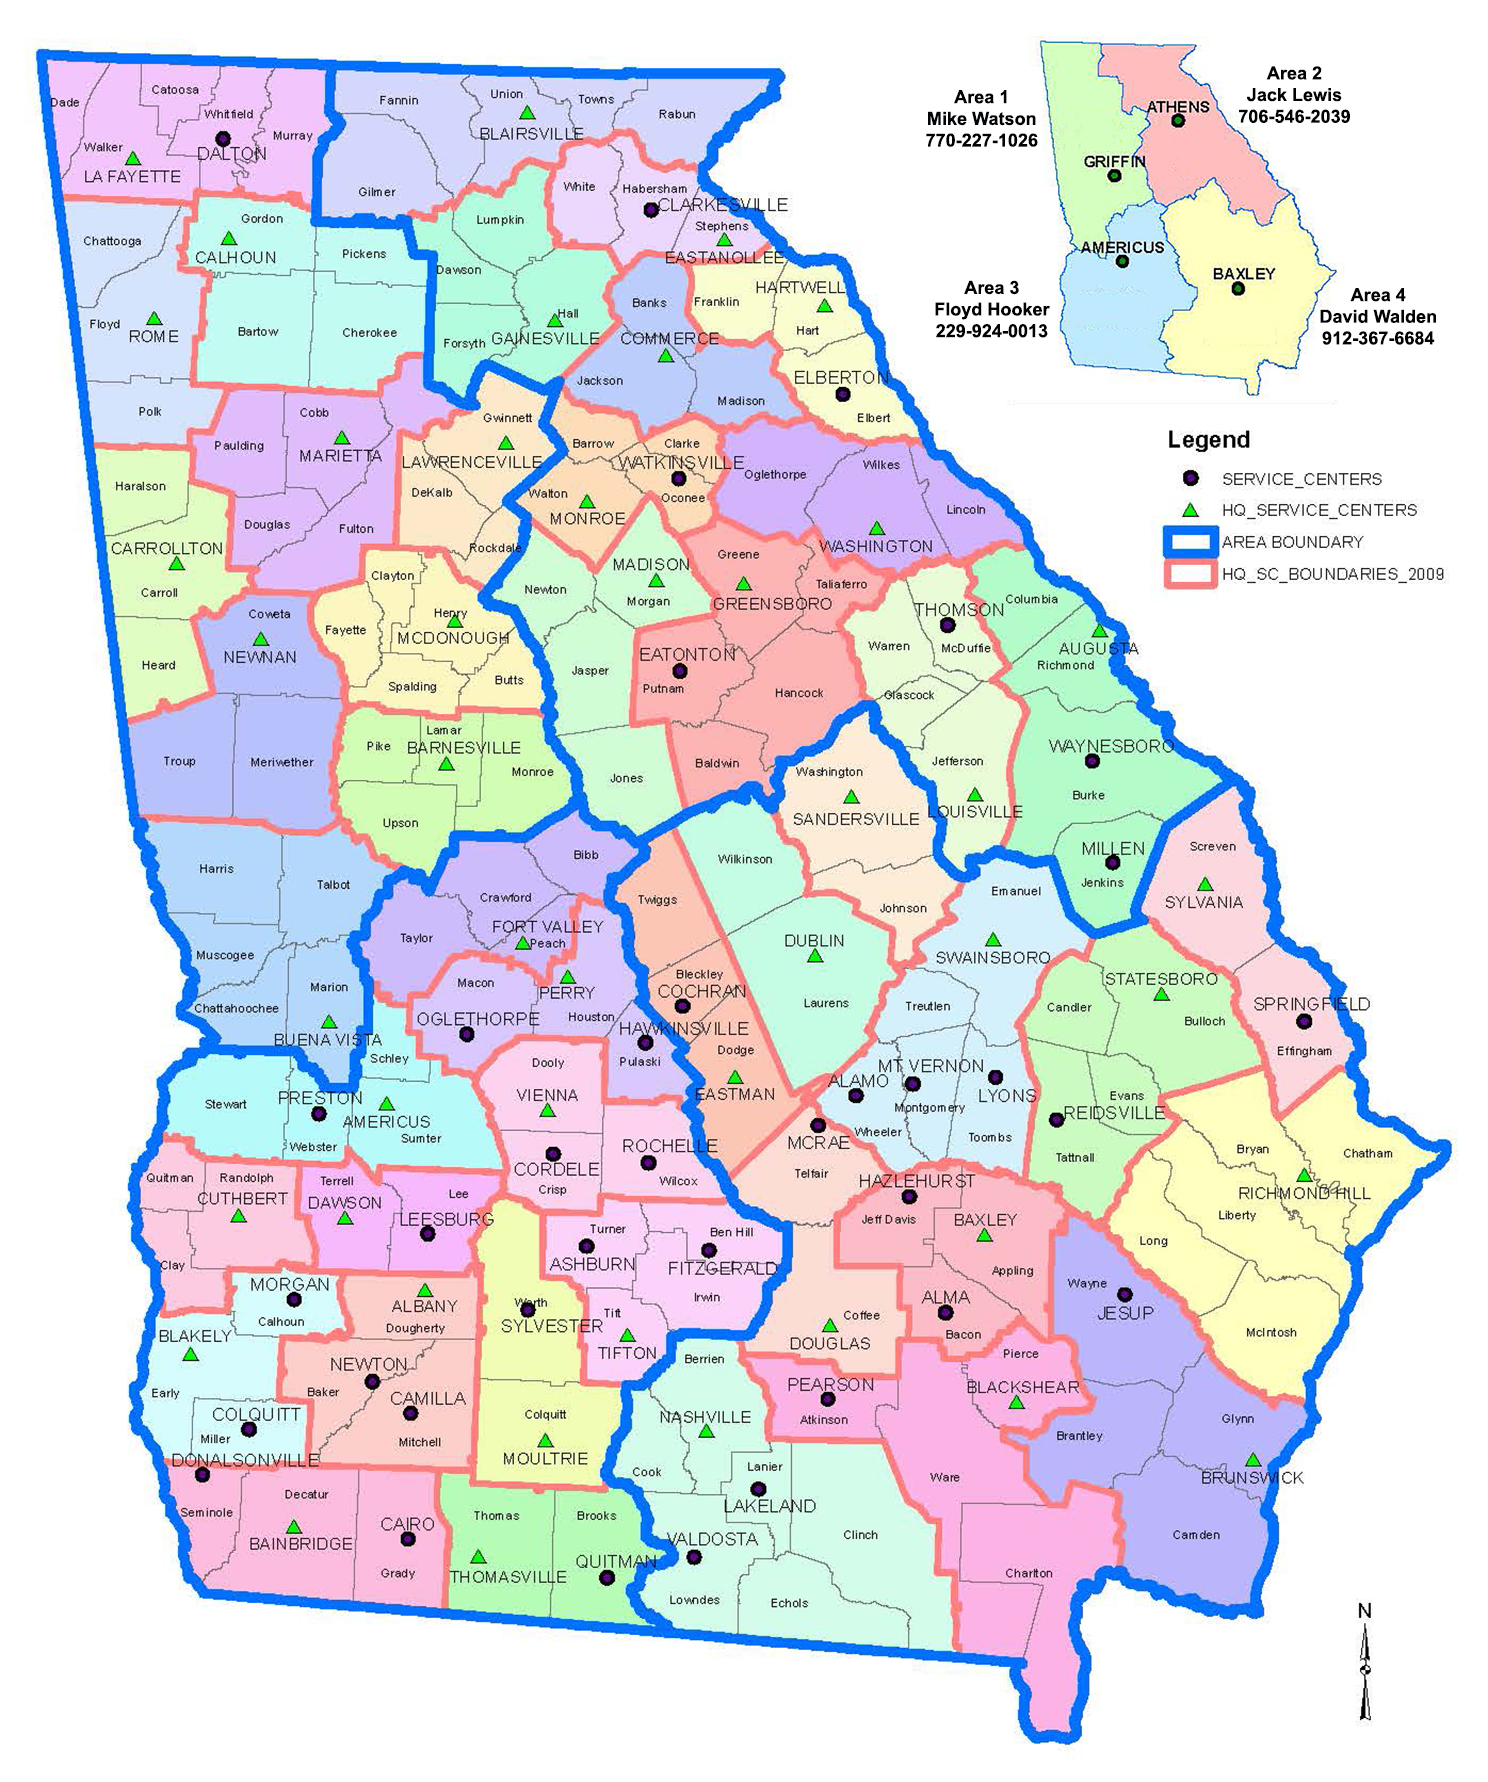 Georgia Service Center Administrative Areas (SCA) | NRCS Georgia